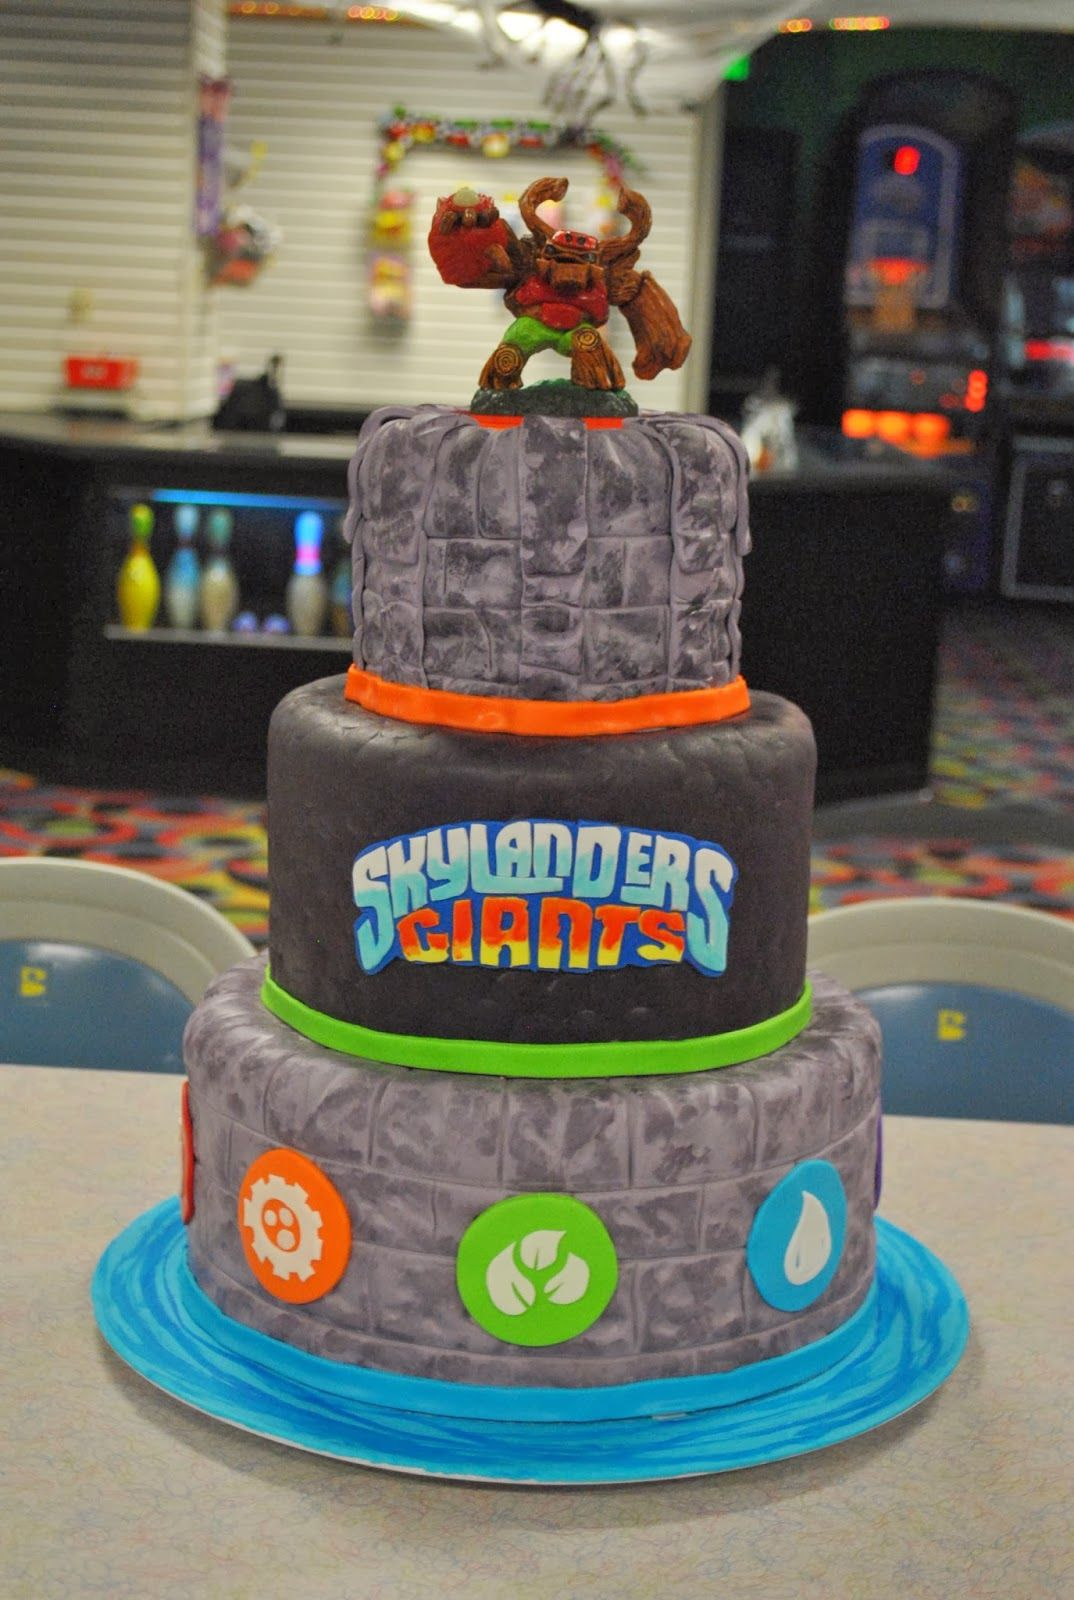 Sensational Skylanders Giants Cake With Images Skylanders Birthday Cake Funny Birthday Cards Online Inifodamsfinfo